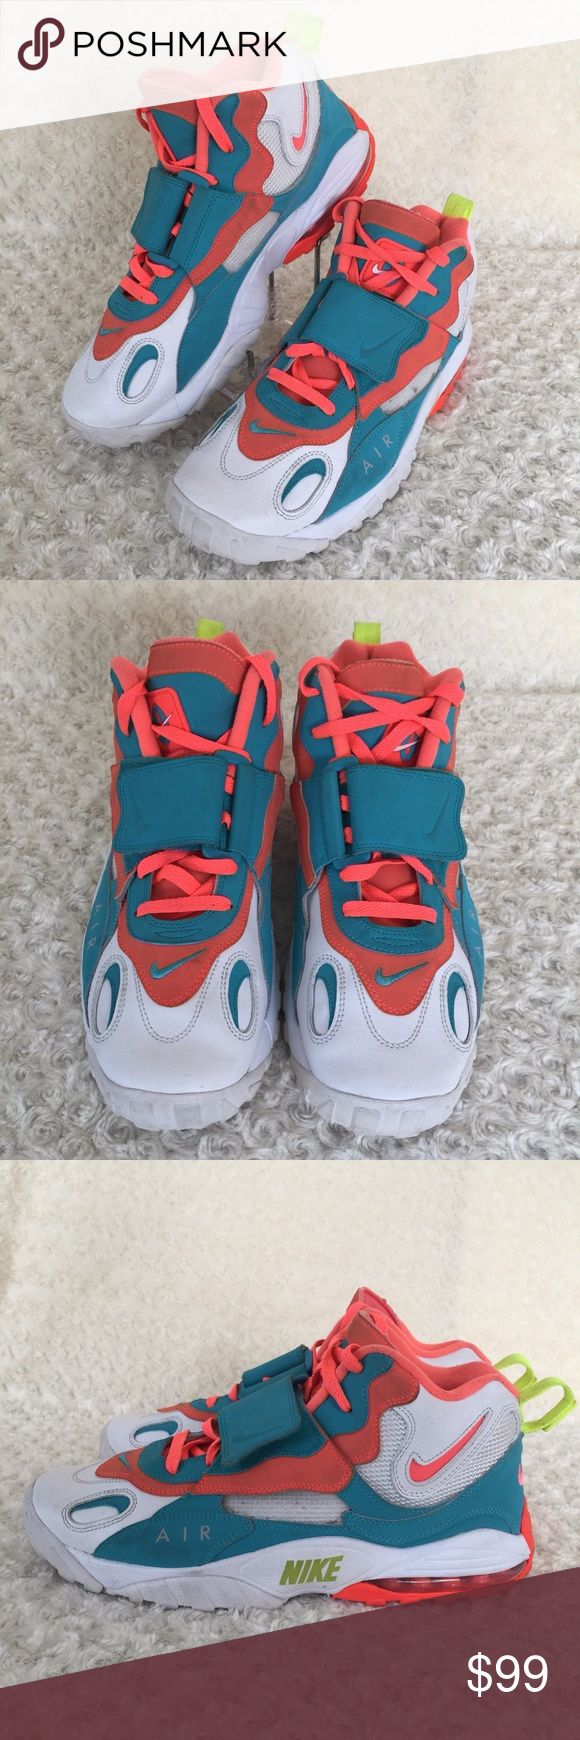 Nike Air Max Speed Men's Turf Shoes 525225-102 Nike Air Max Speed Turf Sz 11.5US Miami Dolphins Retro Inspired Shoes  Style: 525225-102 condition: shows little signs pf wear/dirt on it sole; pictures will show a more detailed description of the item condition  Football meets retro-inspired with this Nike style.   This high-top shoe features a durable leather upper PU midsole outfitted with a cushioning  Air-Sole® unit and solid rubber outsole Nike Shoes